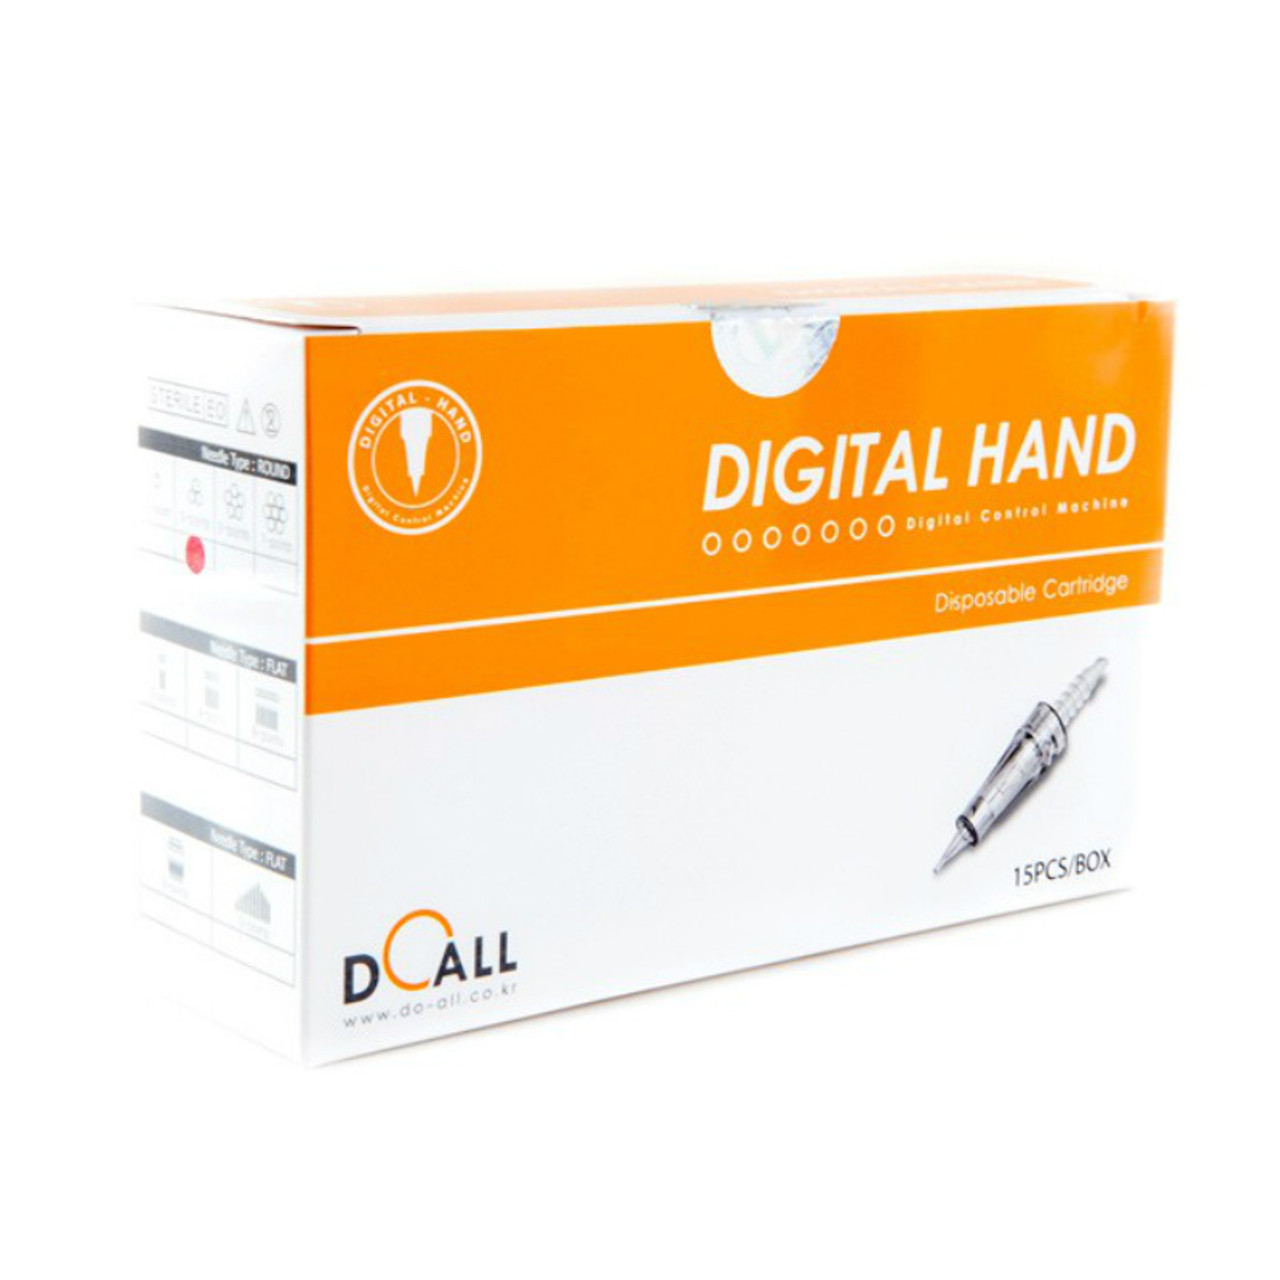 Do-All Digital Permanent Makeup (PMU) Cartridge Needle - 5R